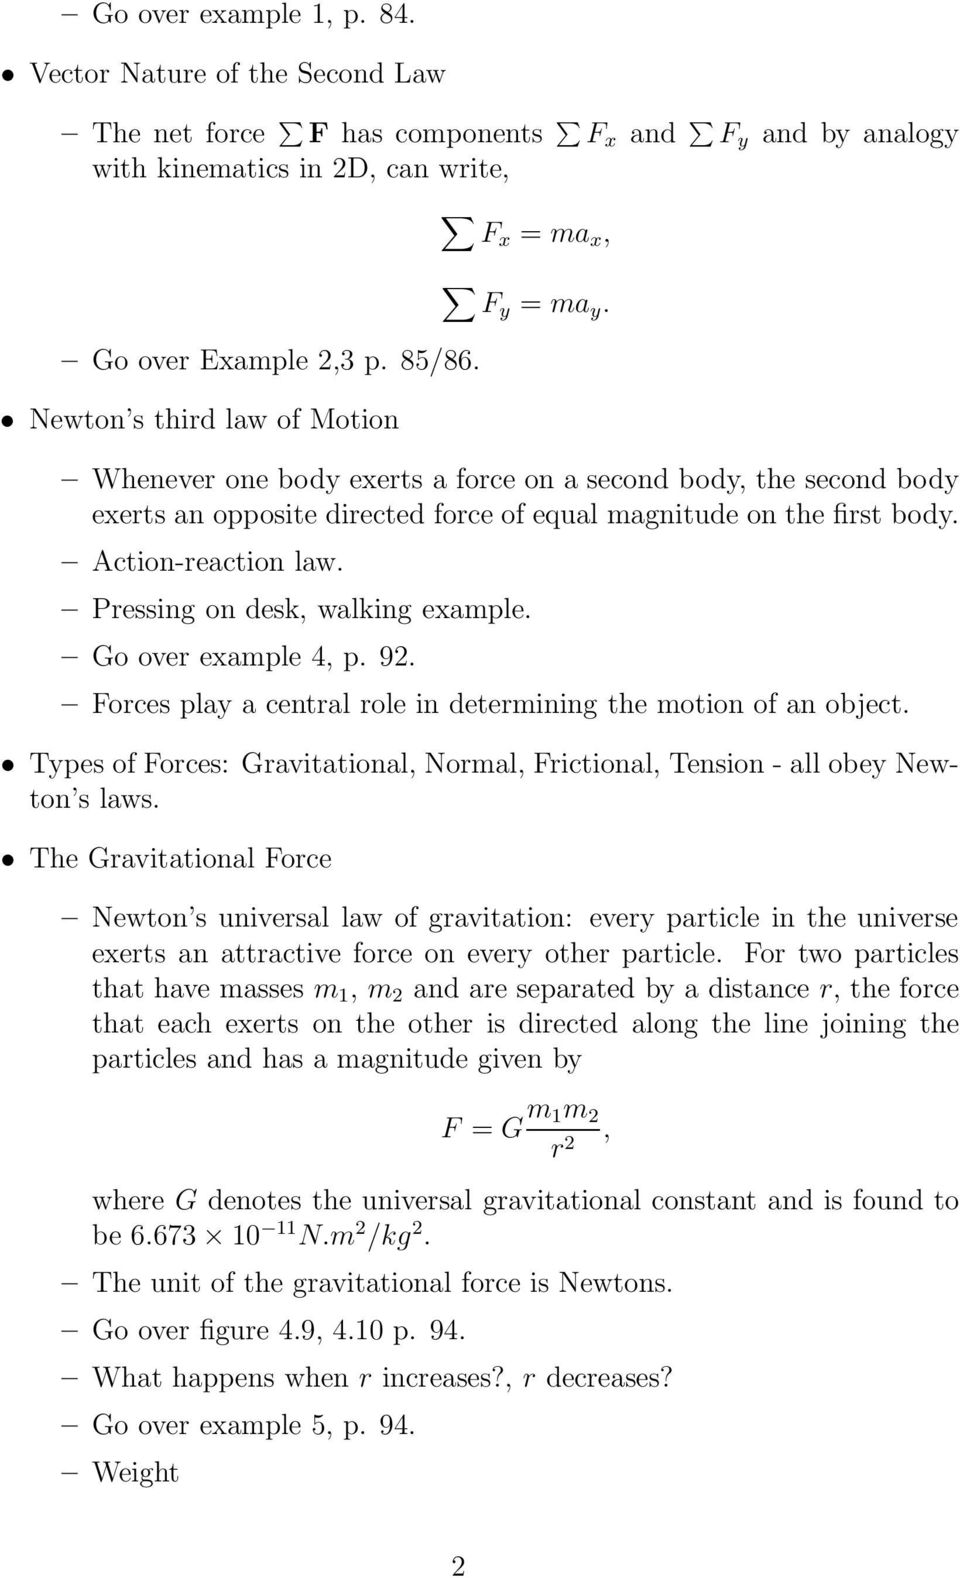 Pressing on desk, walking example. Go over example 4, p. 92. Forces play a central role in determining the motion of an object.